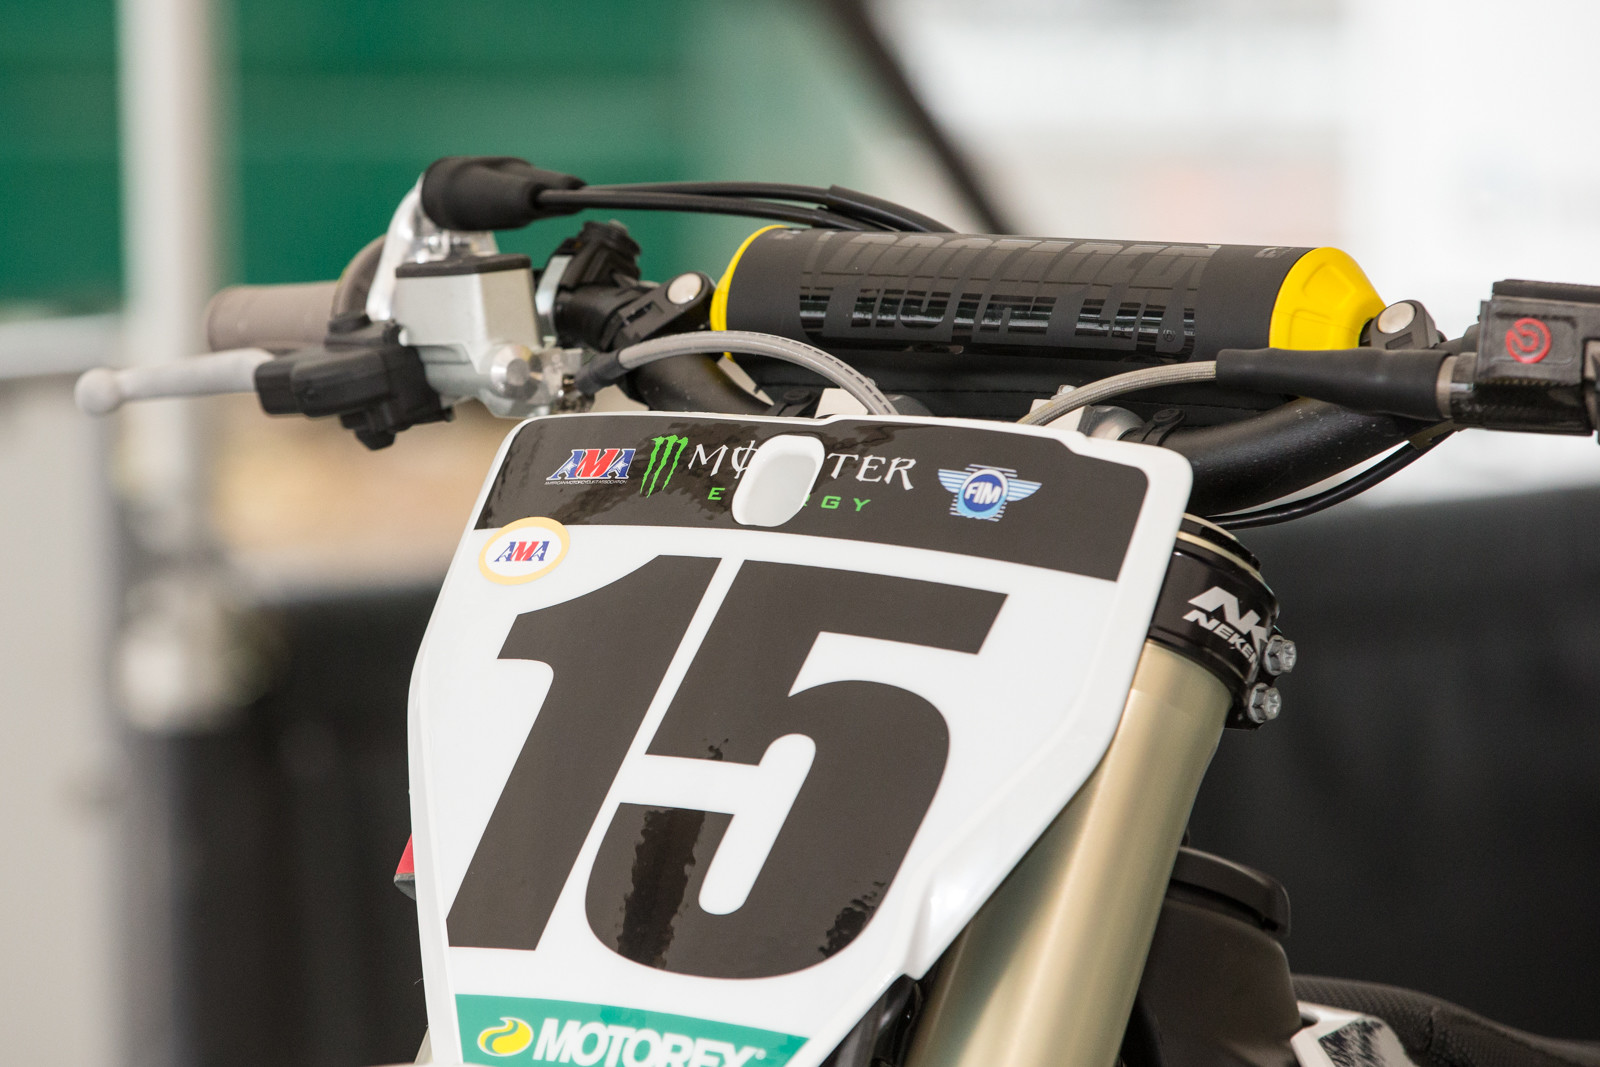 The latest collection of Pro Taper bar pads were released this week, here Dean Wilson's bike has one of the new sets.